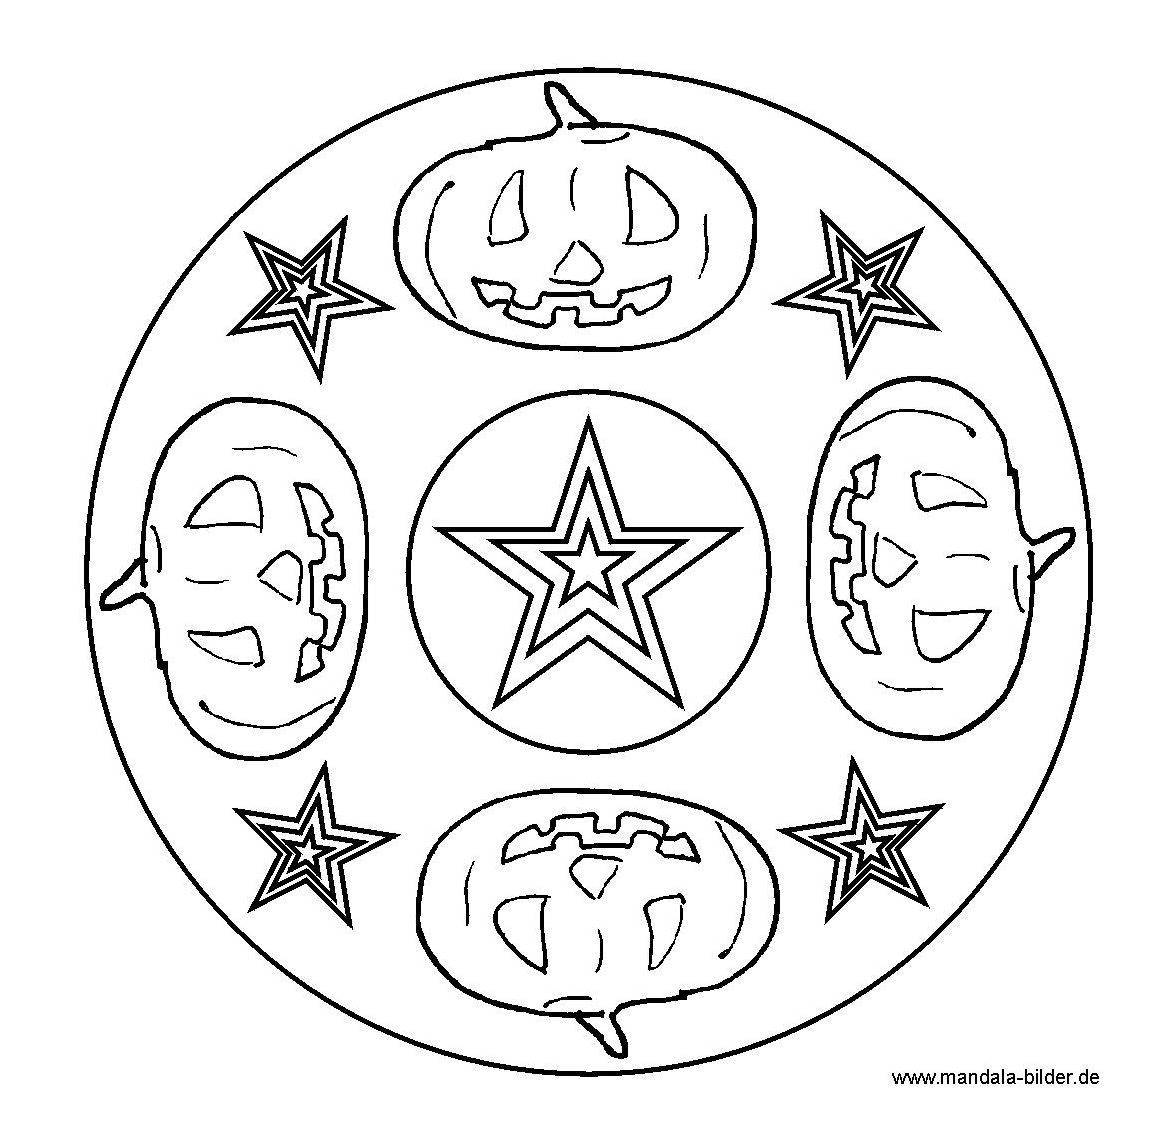 Coloriages et jeux d 39 halloween le blog de jackie - Coloriages d halloween ...